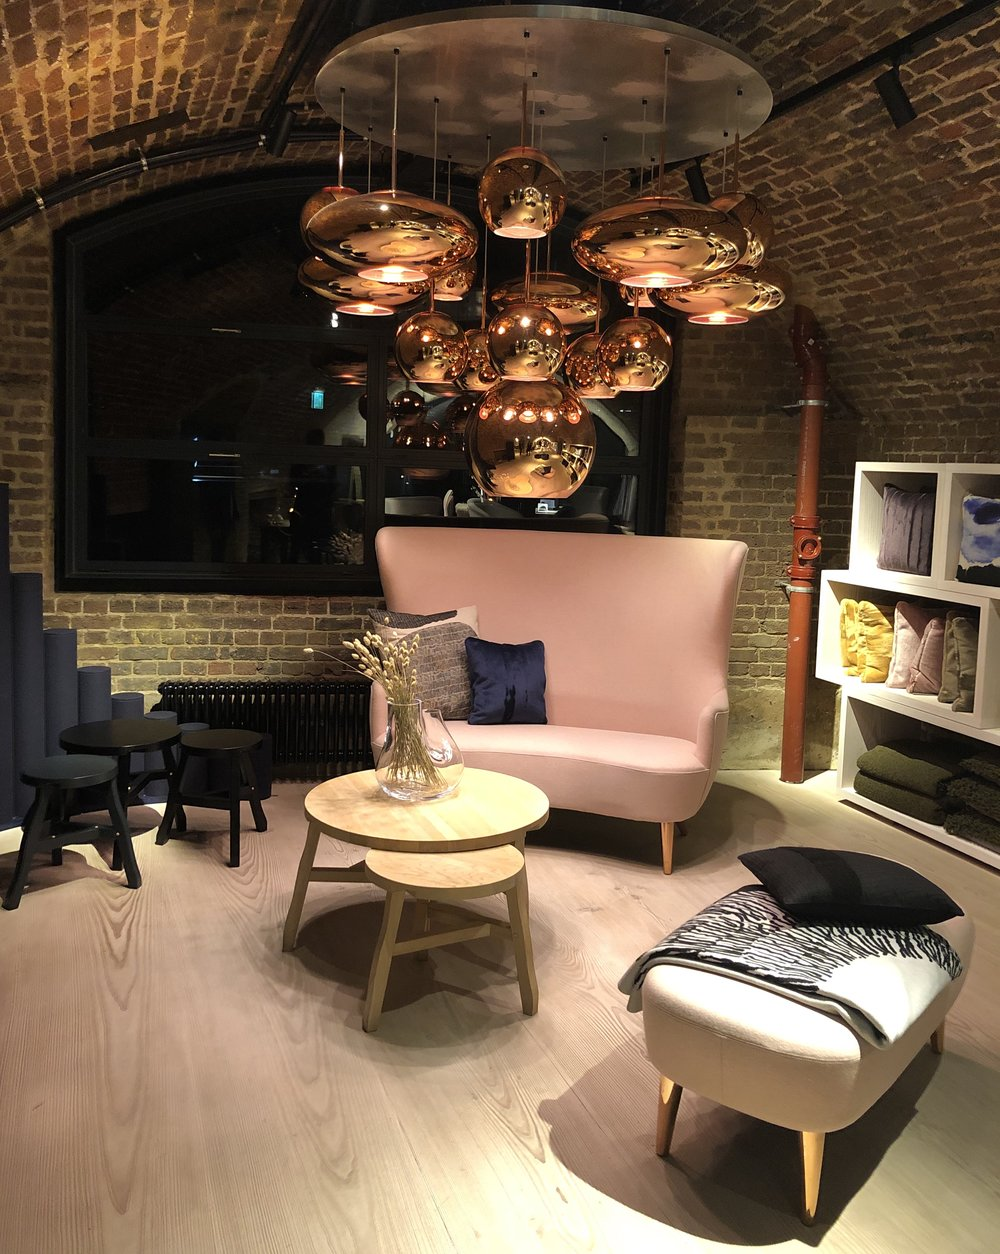 Luxury lighting, furniture and accessories designer Tom Dixon shows off his entire collection in 3 adjoining spaces combining studio workshop and office…  tomdixon.net